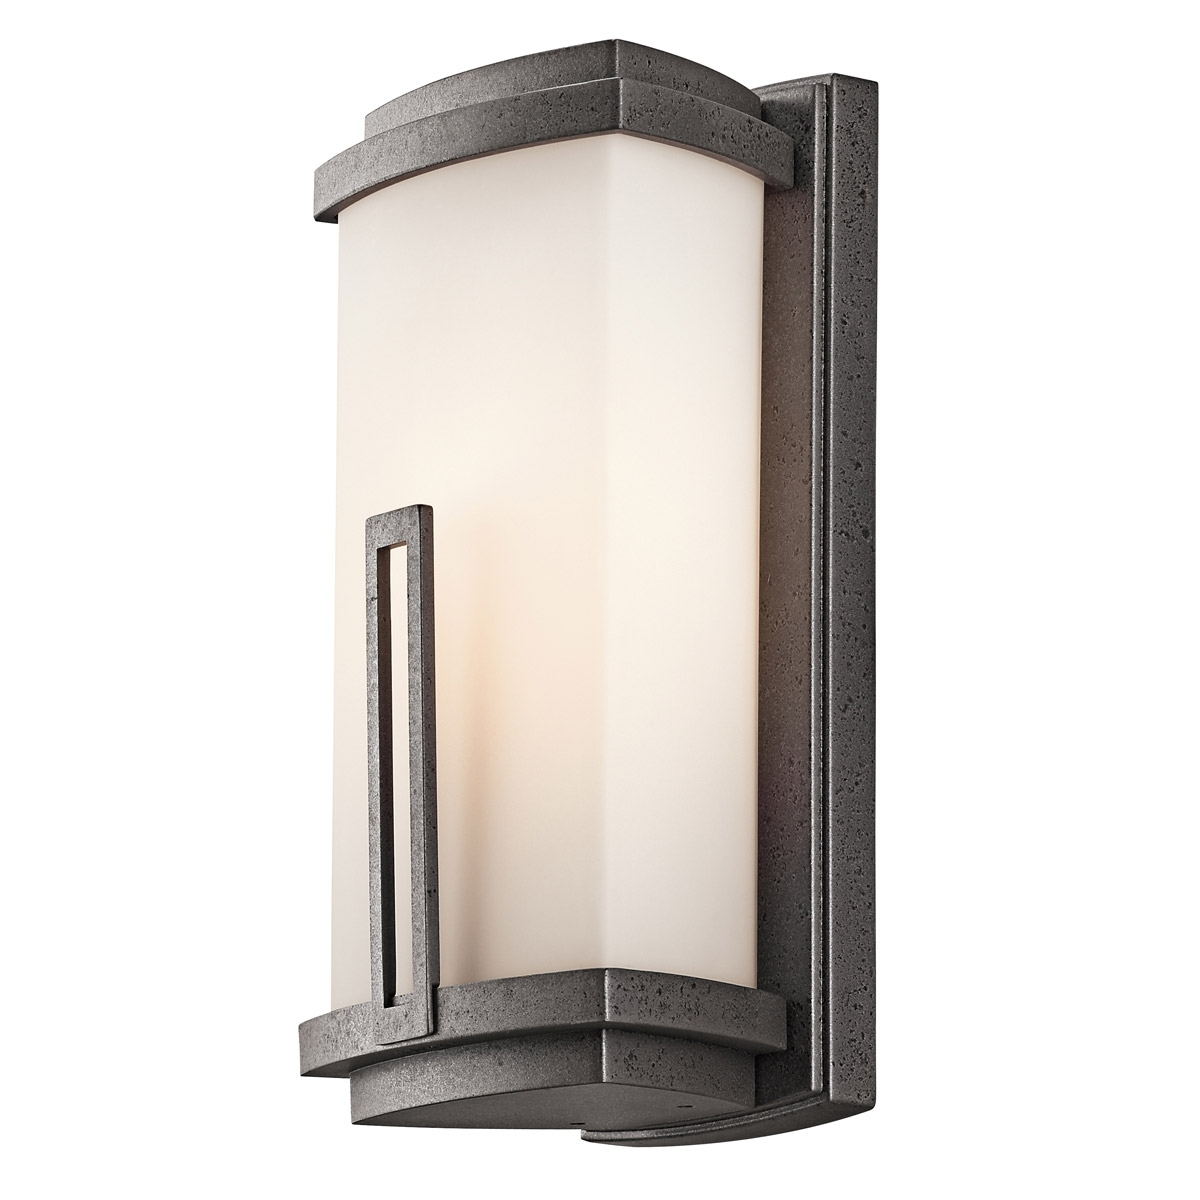 Contemporary Outdoor Wall Lighting Fixtures With Regard To 2018 49110avi Leeds Outdoor Wall Sconce (View 20 of 20)